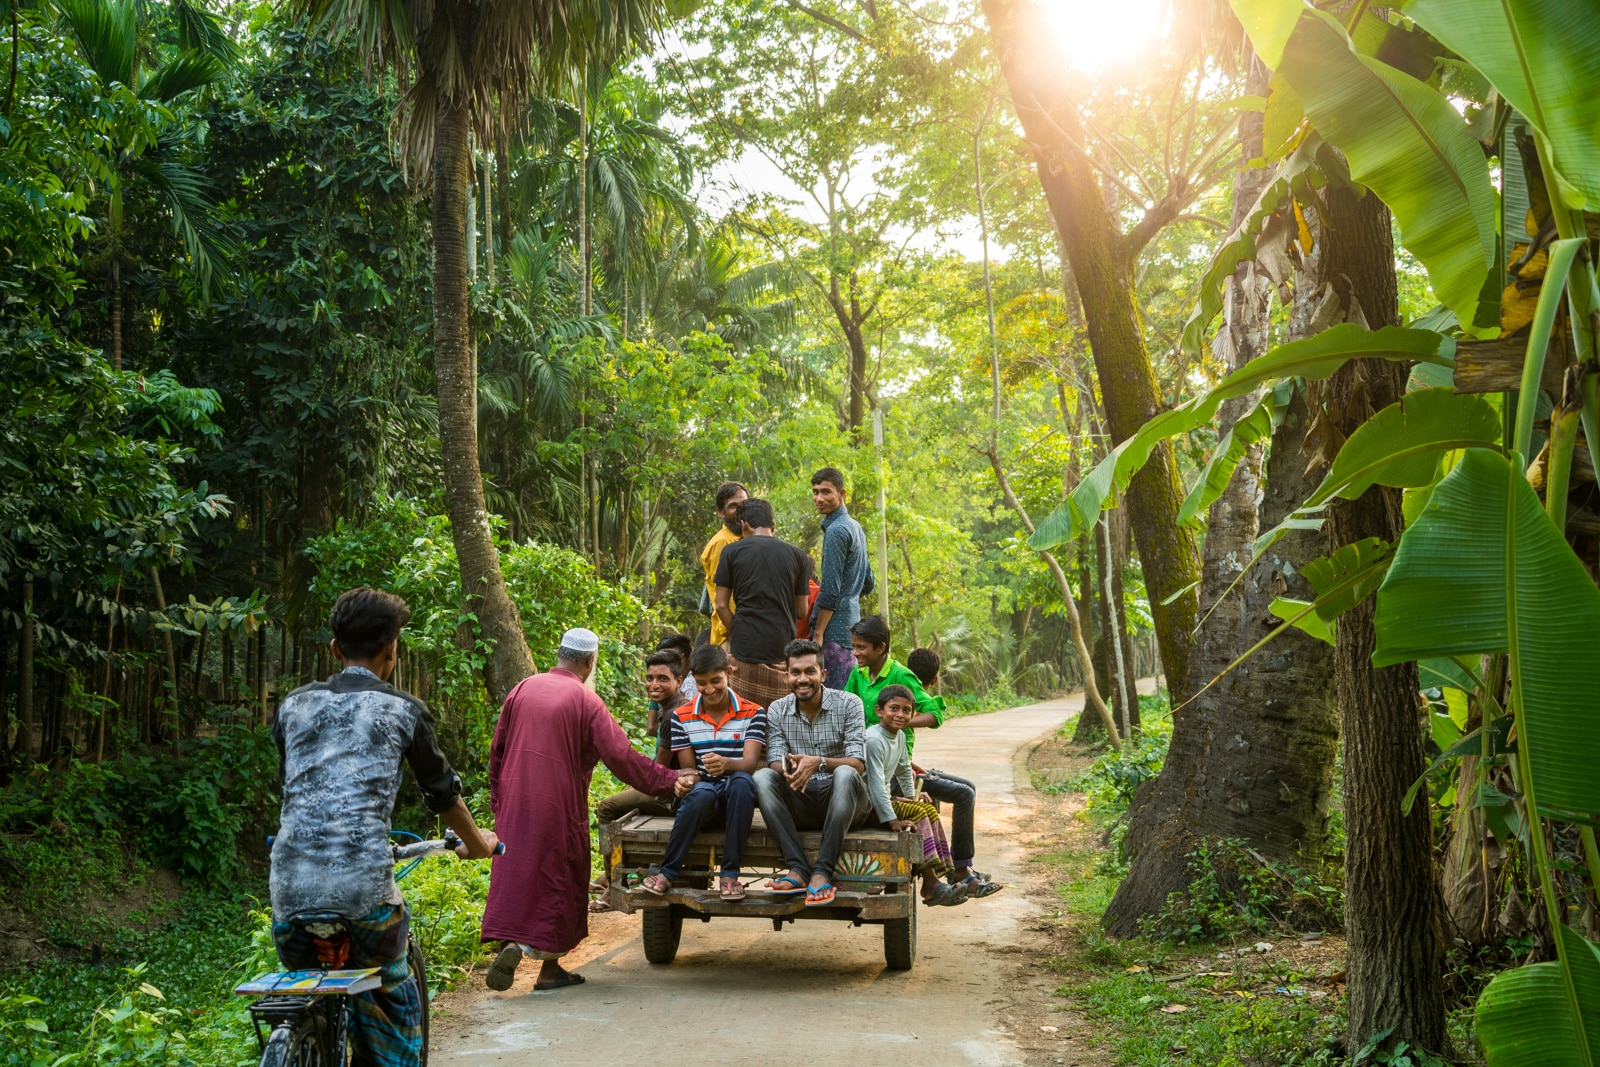 Men and boys riding a van in Monpura island, Bangladesh